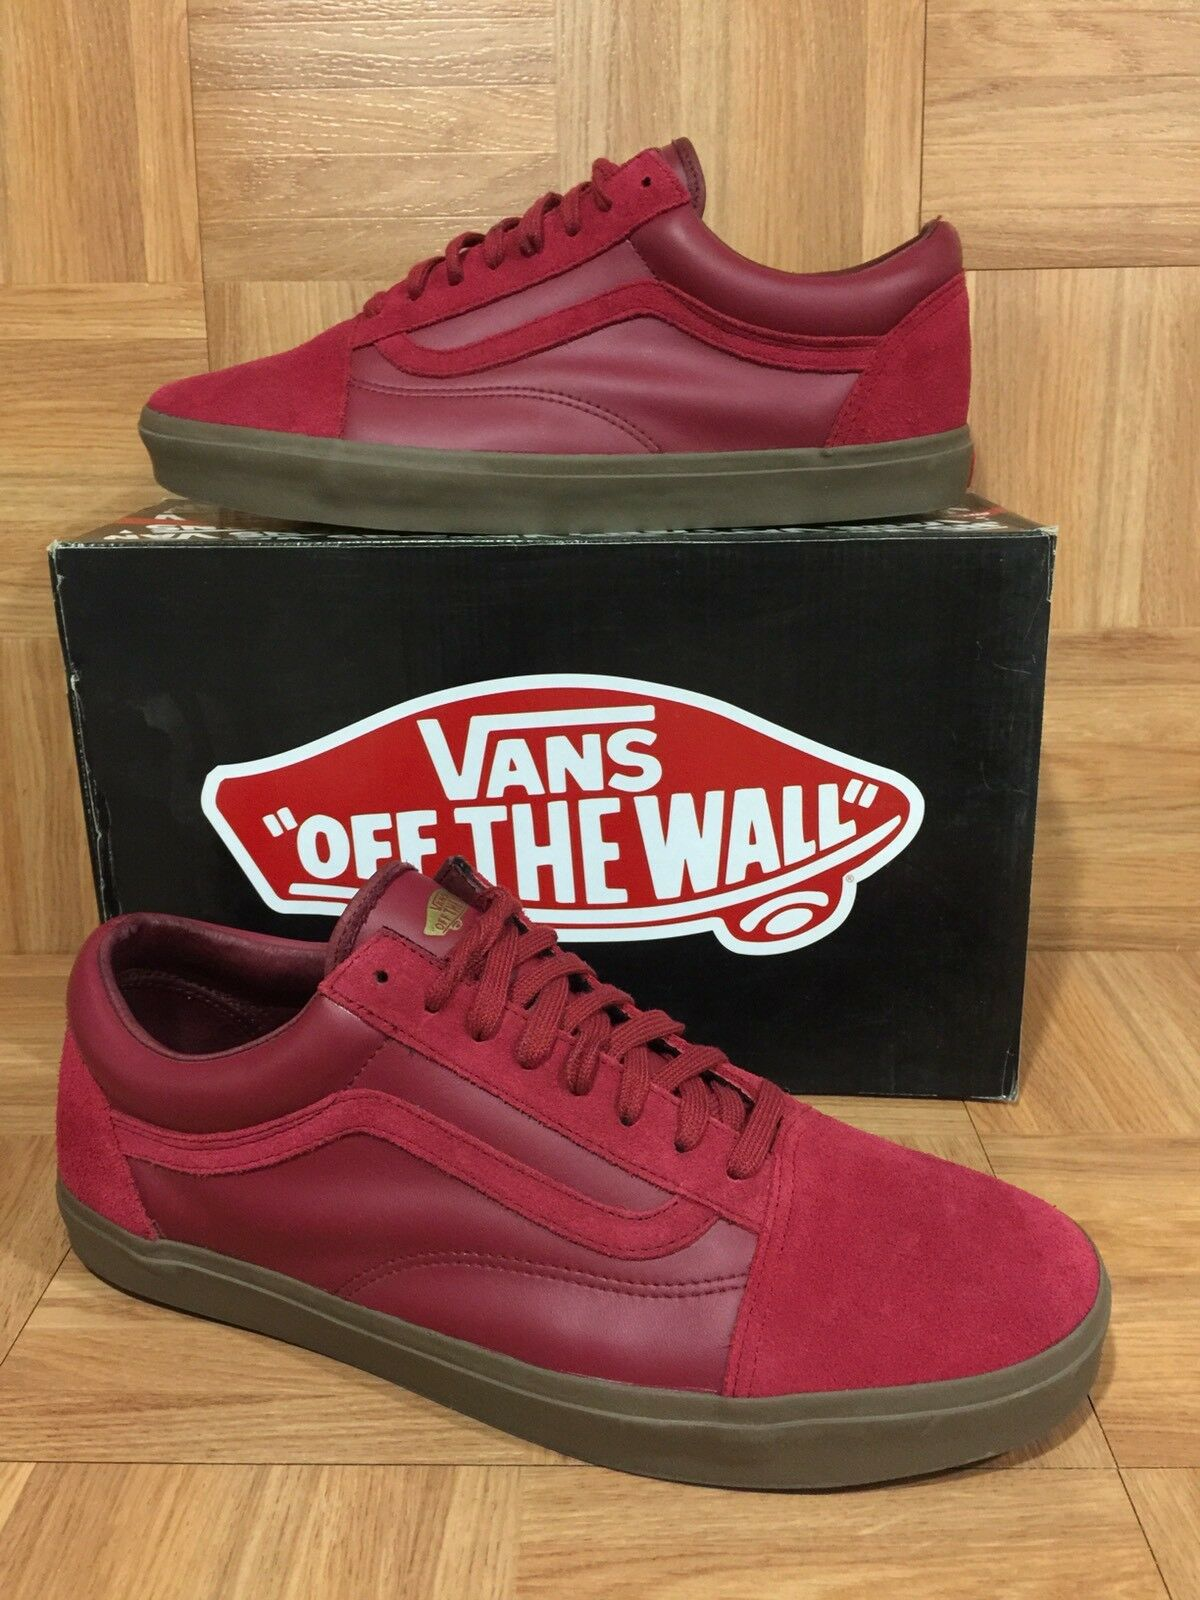 RARE VANS Old Skool '92 Zero Supreme Maroon Red Gum Brown Sz 13 Men's shoes LE